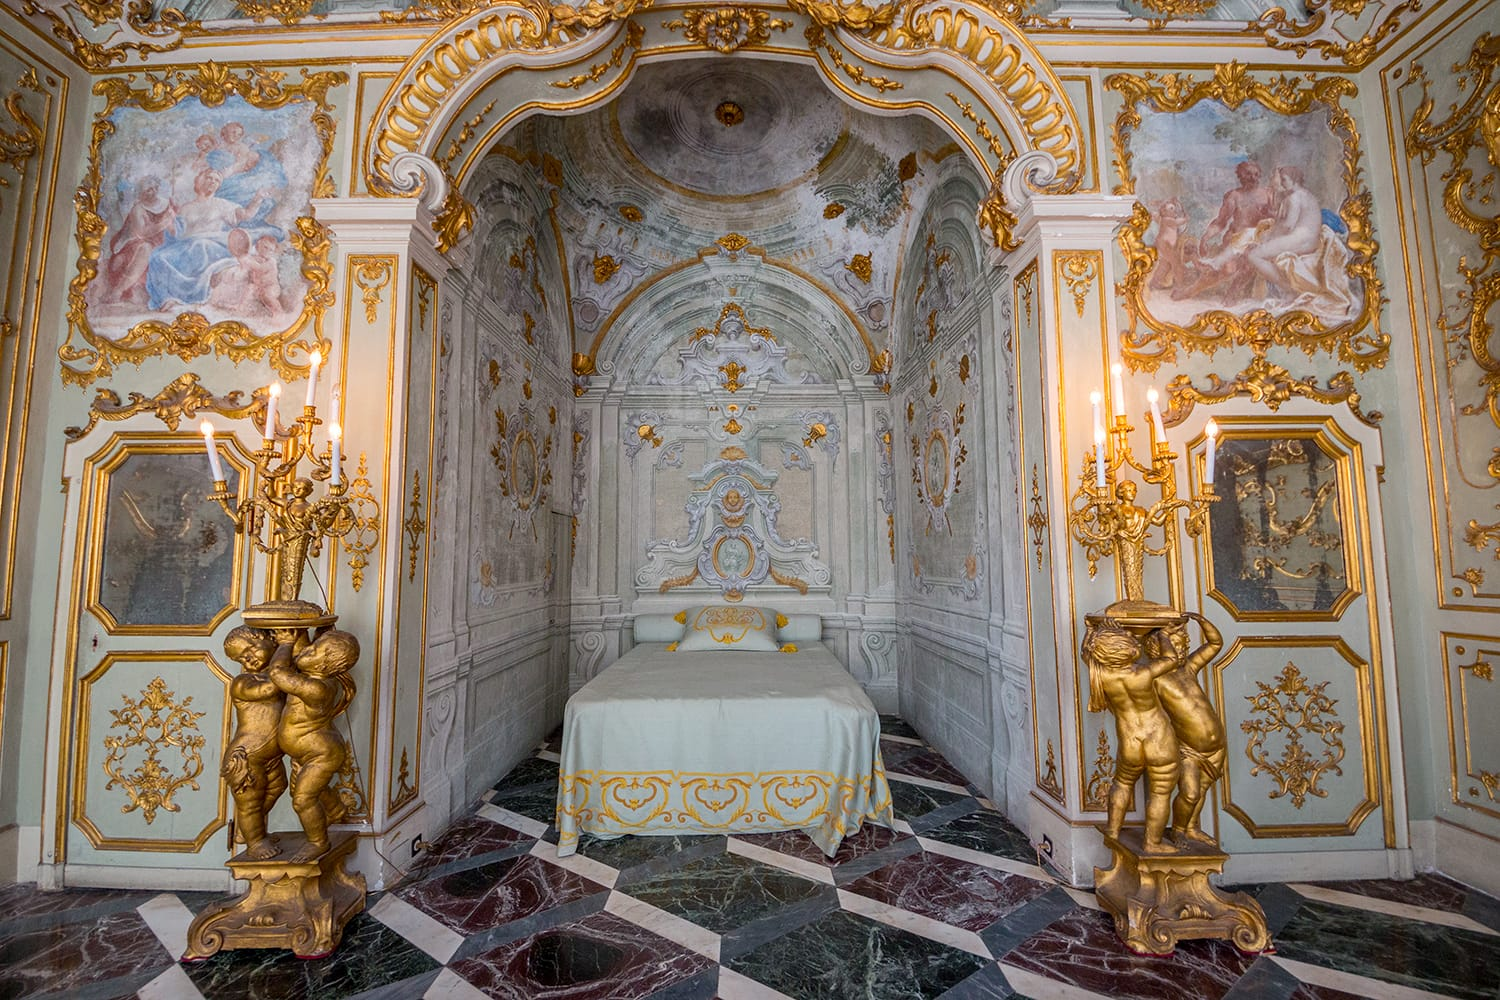 Palace Brignole-Sale known as Palace Rosso, the System of Palazzi dei Rolli, Genoa, Liguria, Italy